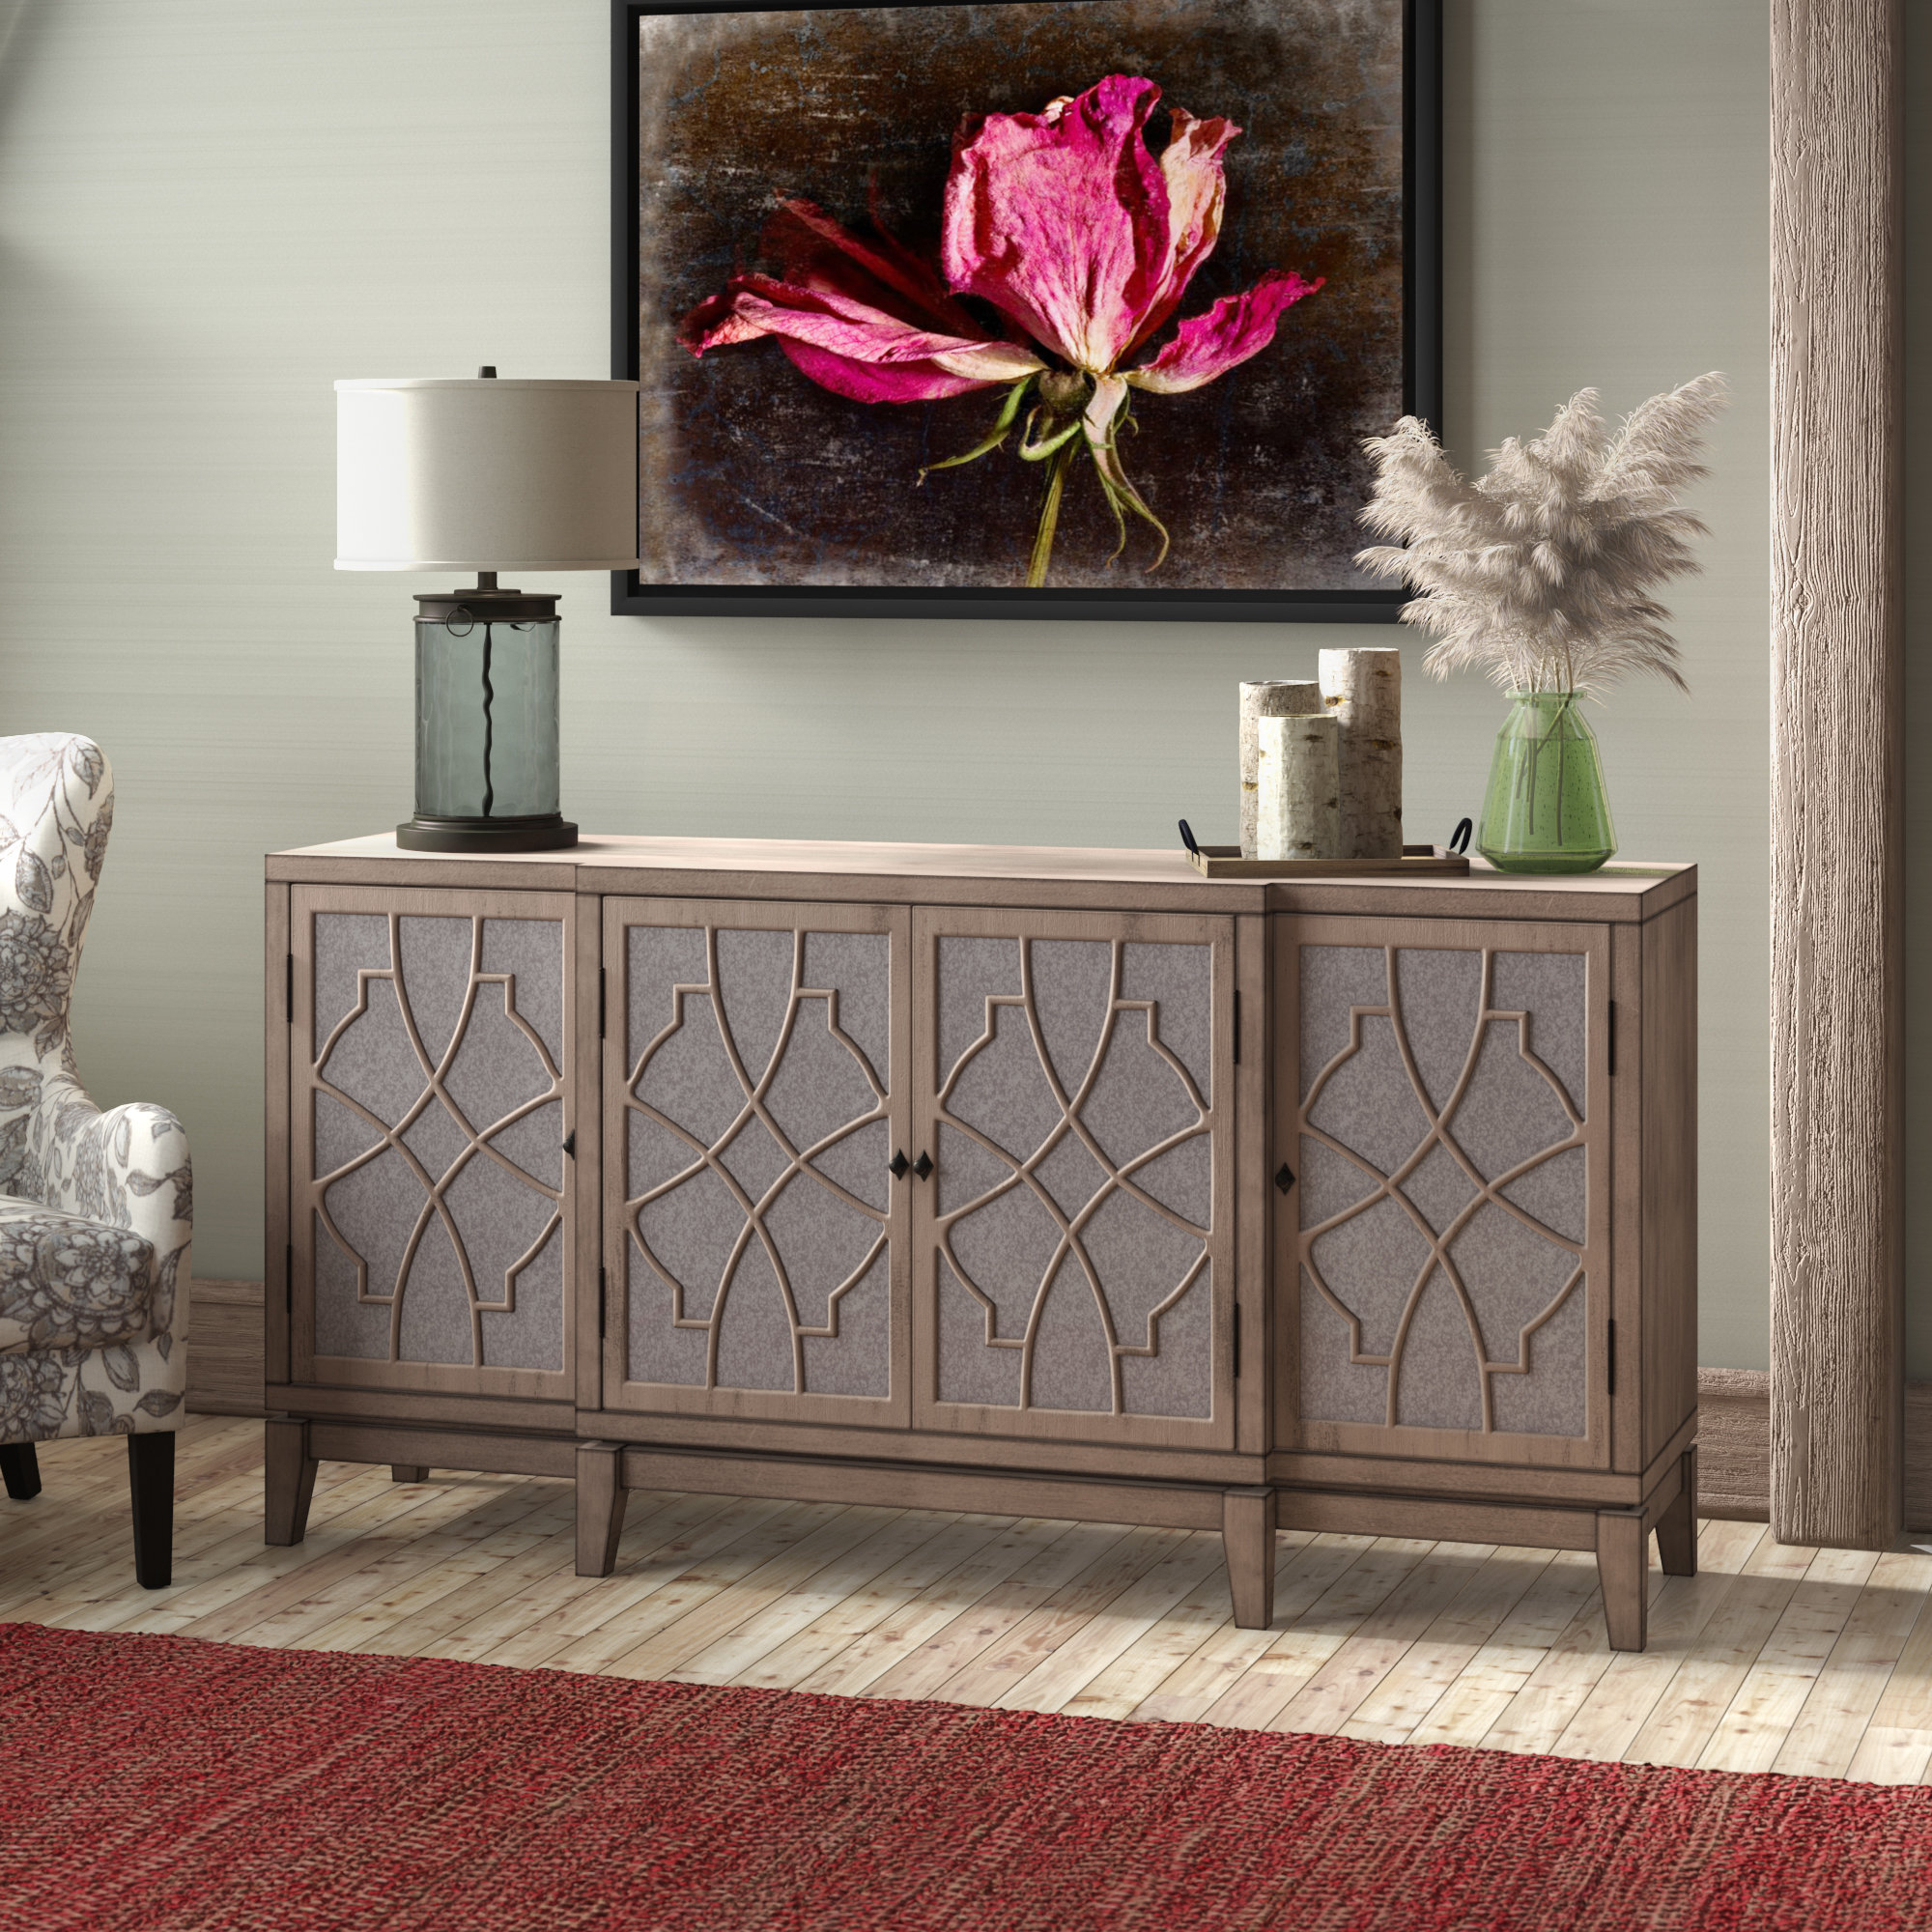 Kendall Sideboard For Recent Kendall Sideboards (View 4 of 20)